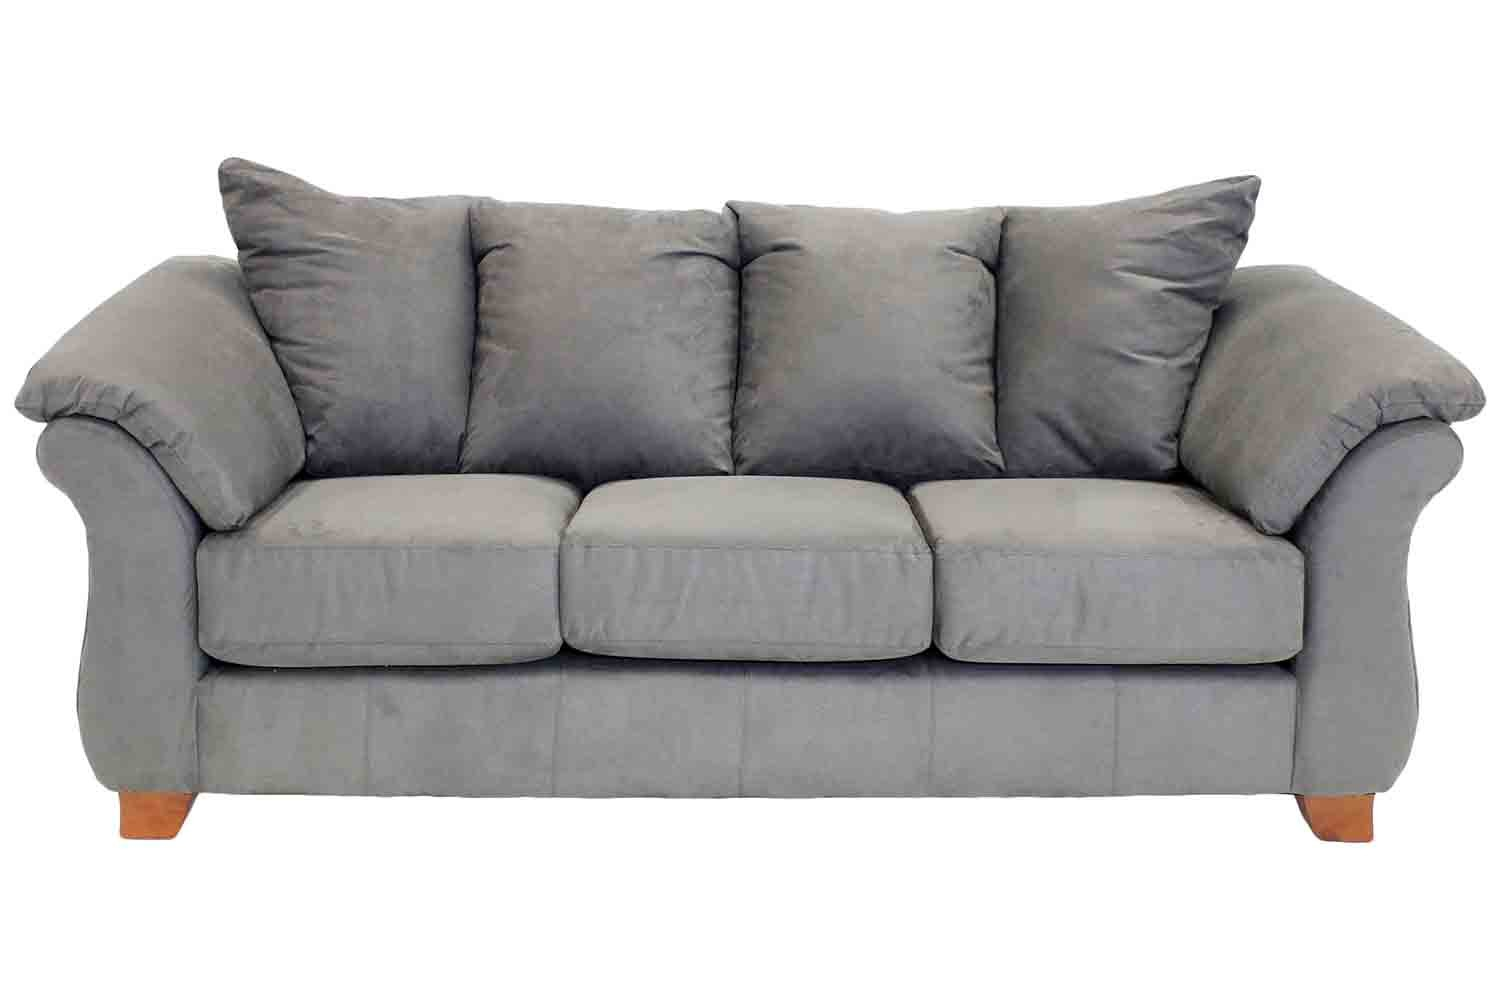 Shasta sofa in charcoal